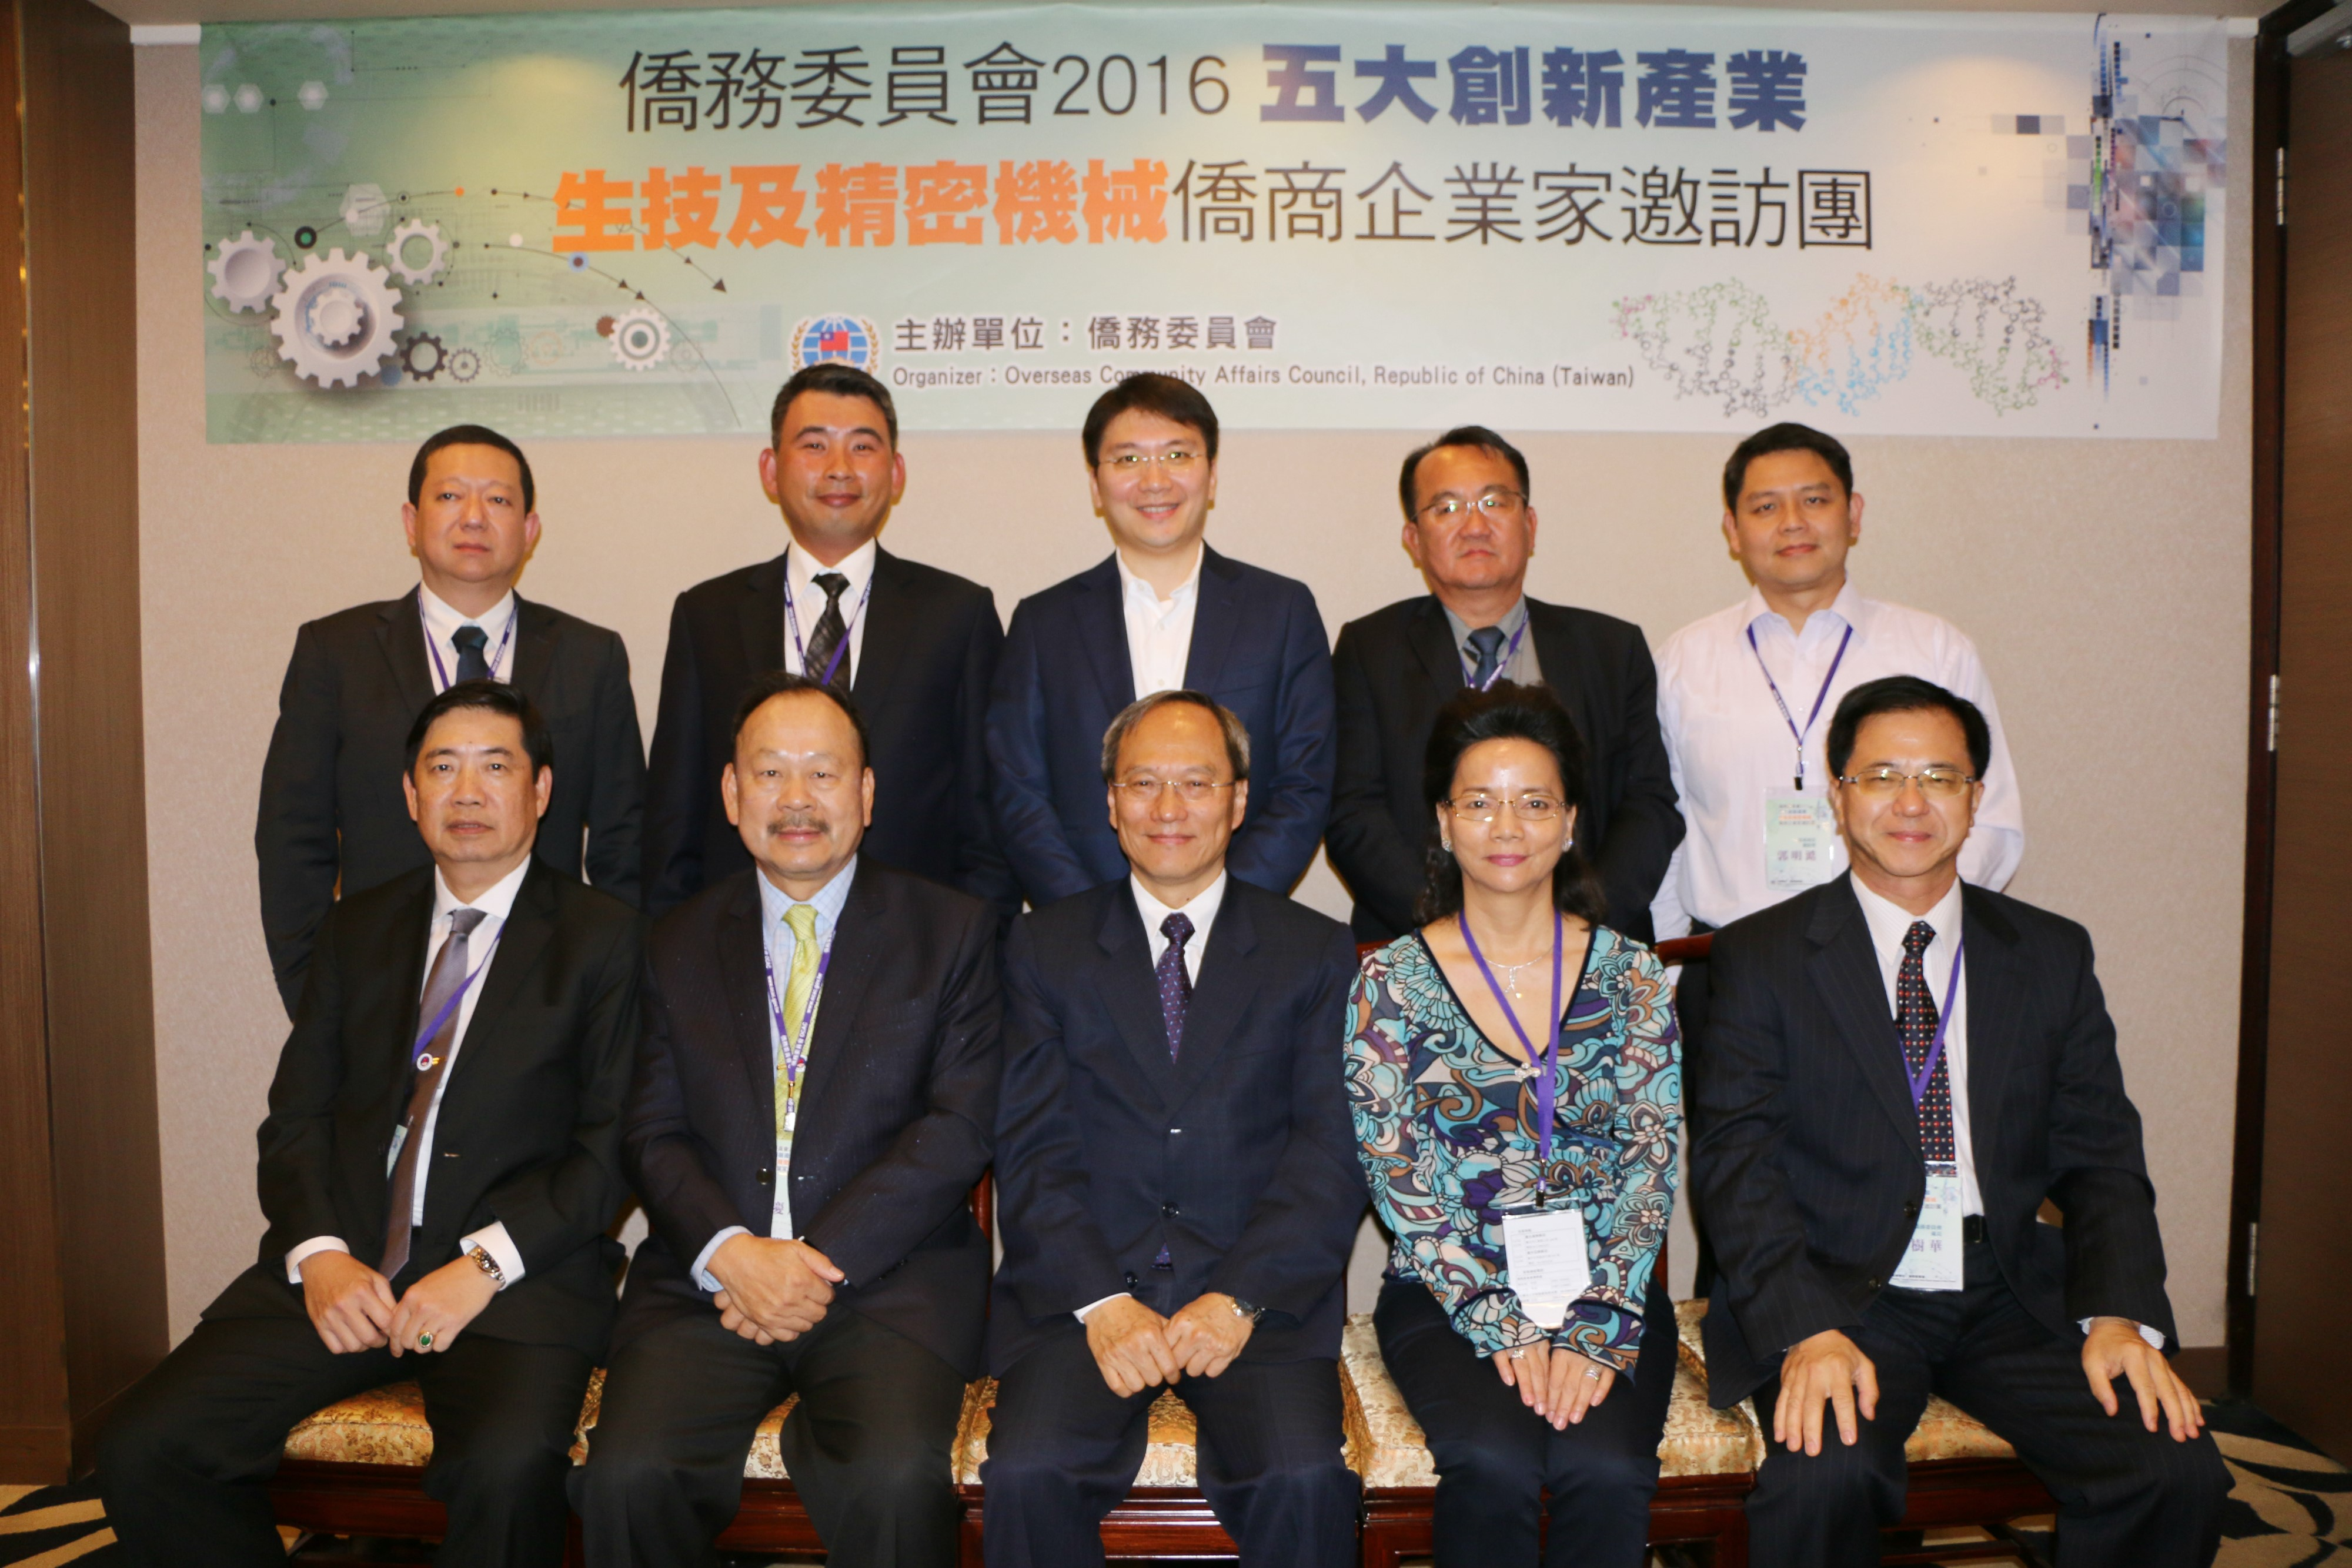 Minister Wu photographed with all the participants of2016 Five Innovative Industries-Bio-tech and Smart Machinery Overseas Chinese Compatriot Visiting Group